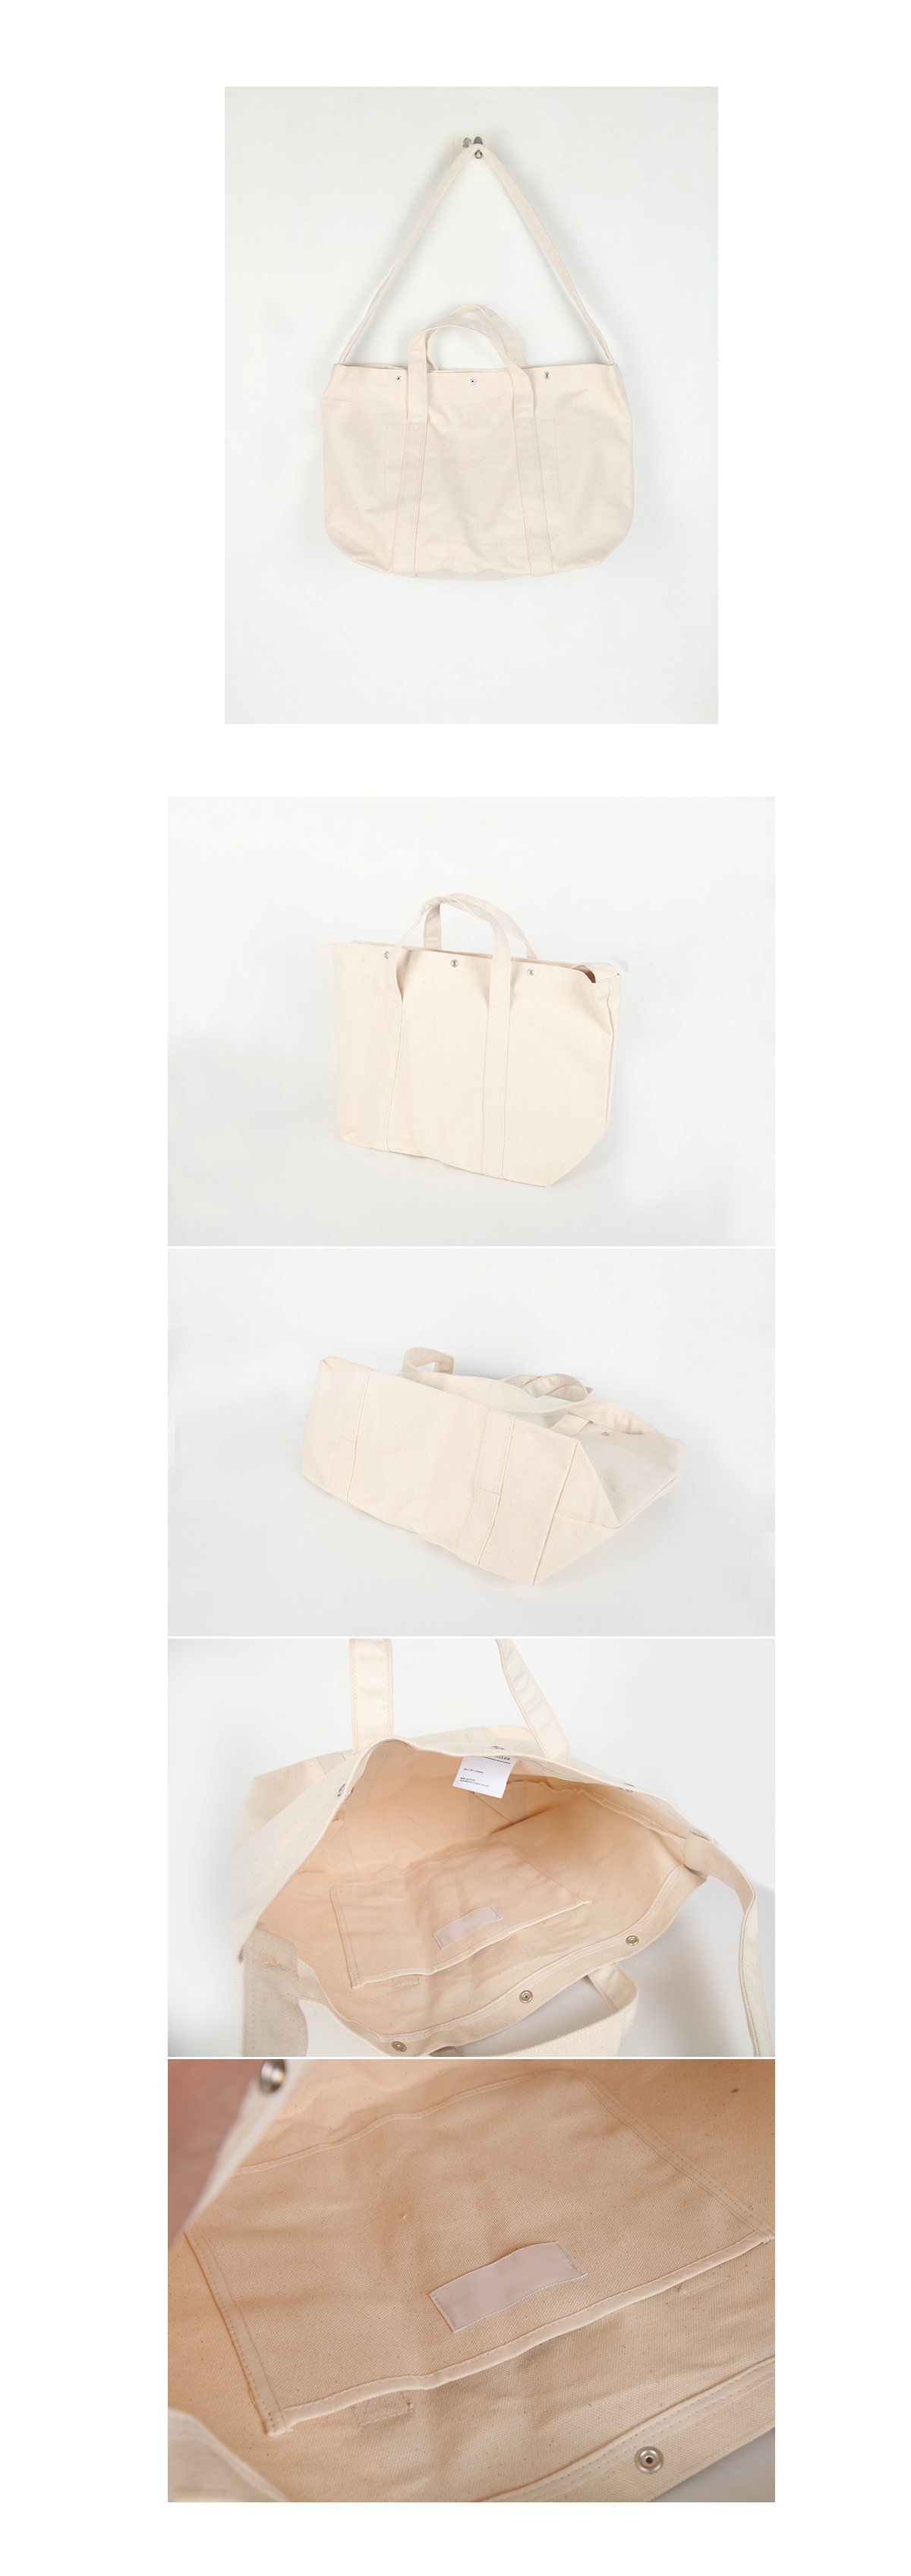 converse cotton bag